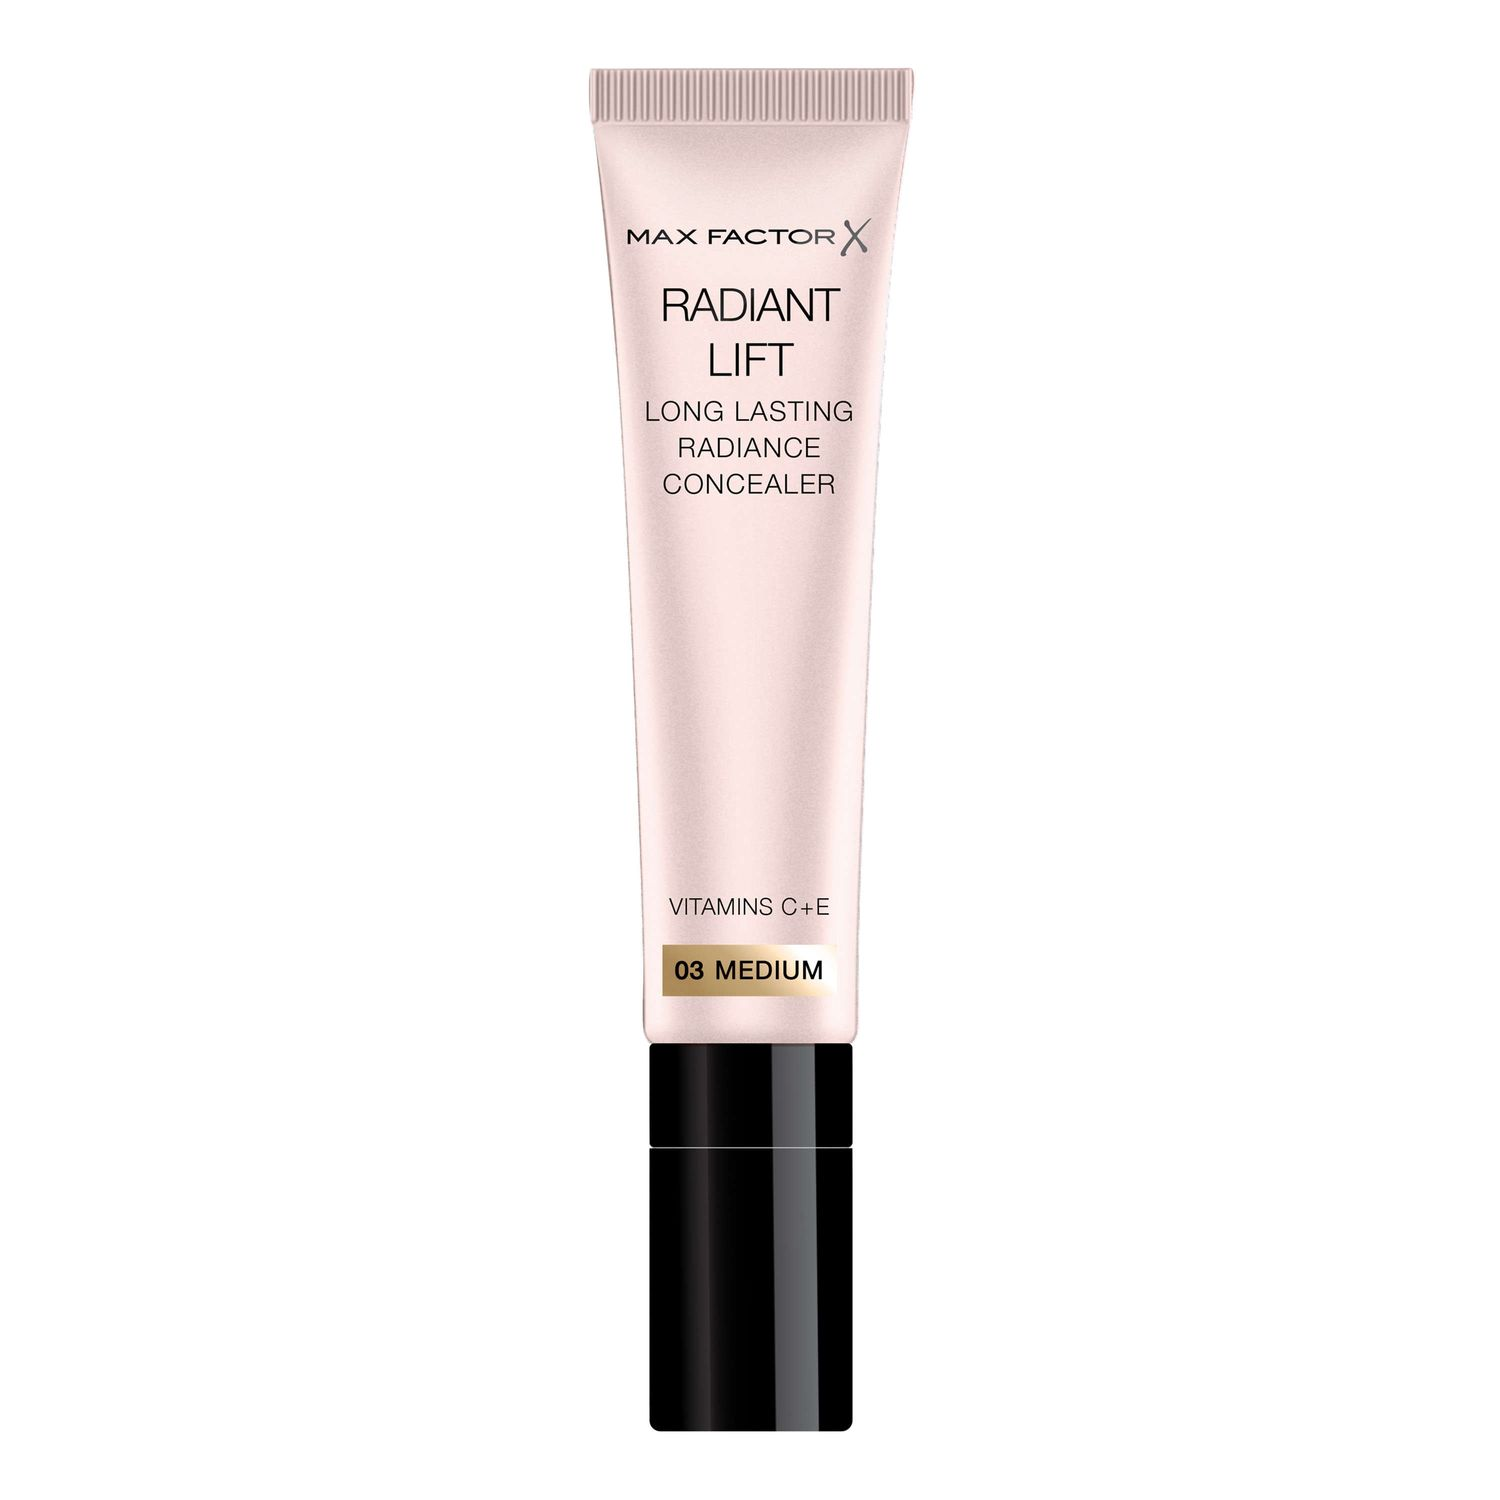 Radiant Lift Concealer 3 Medium